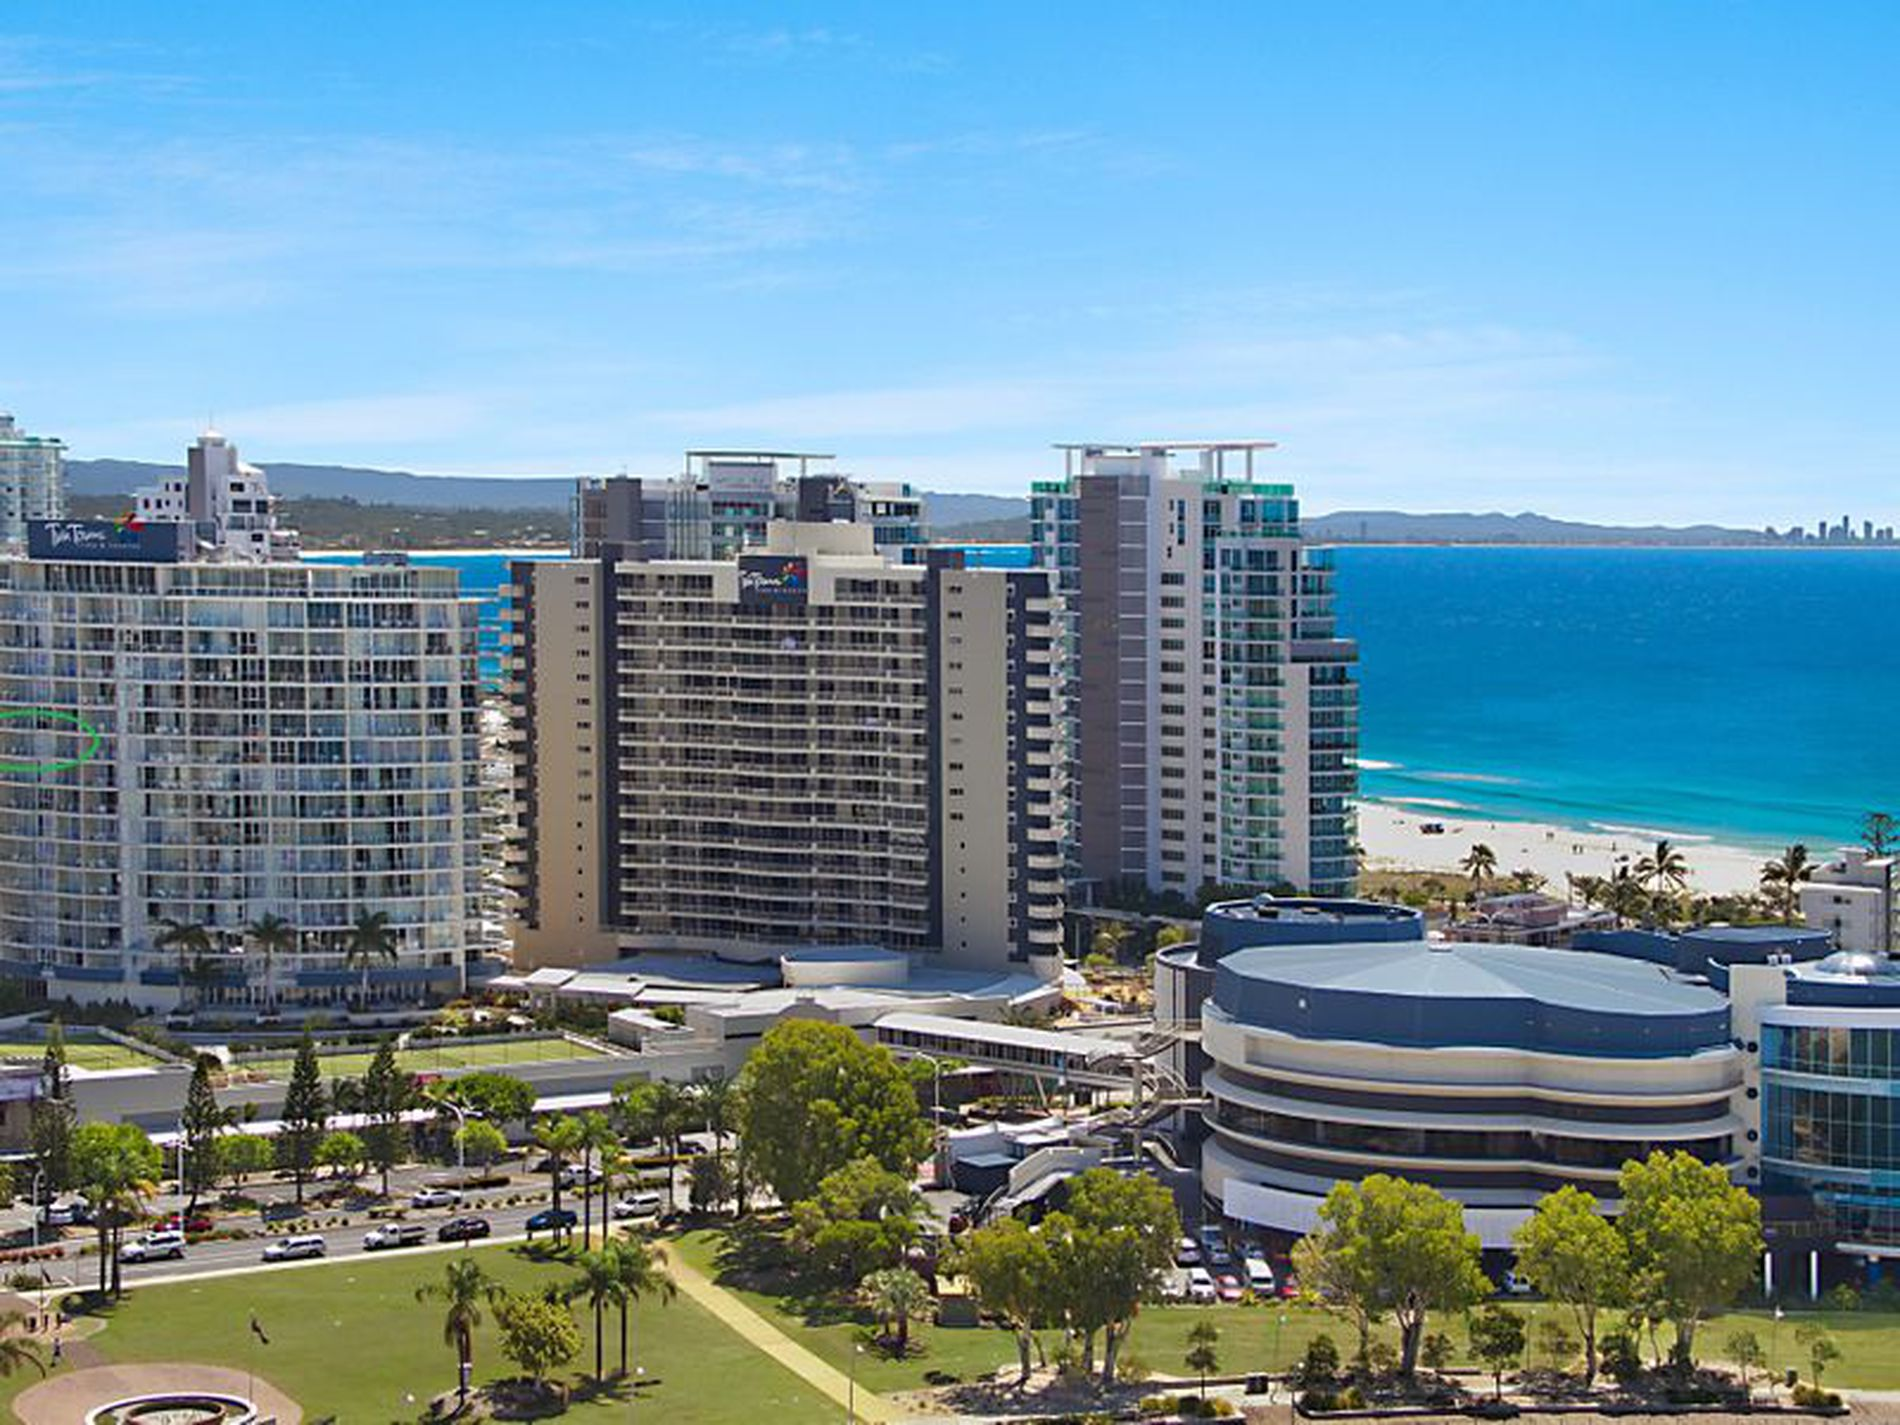 839 / 840 Harbour Tower, 4 Stuart Street, Tweed Heads